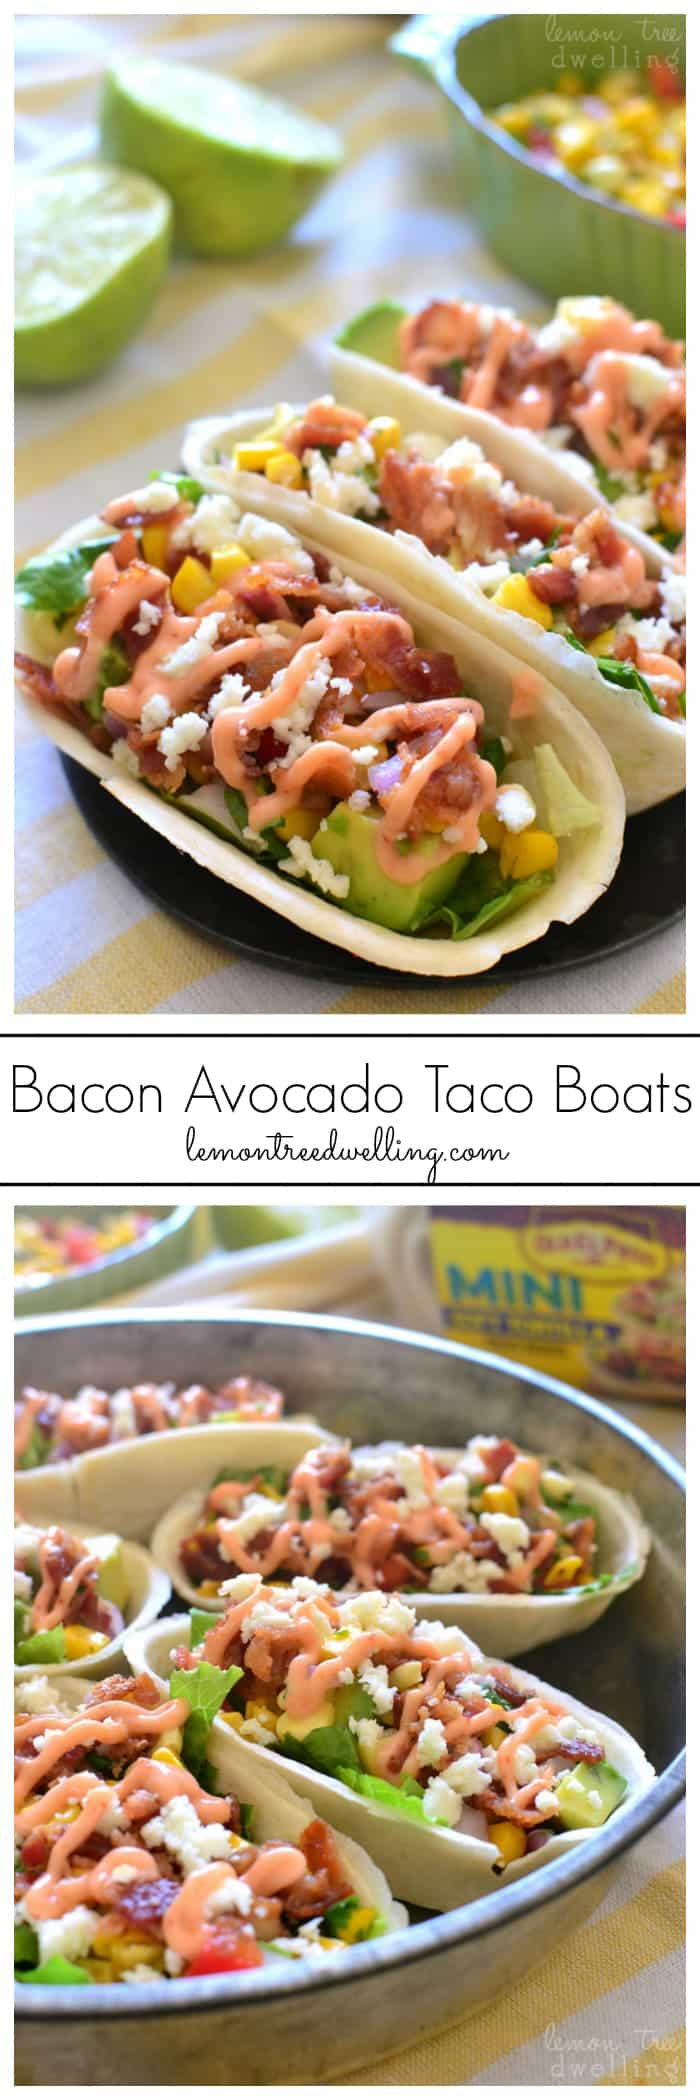 Bacon Avocado Taco Boats - loaded with lettuce, bacon, avocado, cheese, fresh corn salsa, and spicy sriracha mayo. My family LOVED these!